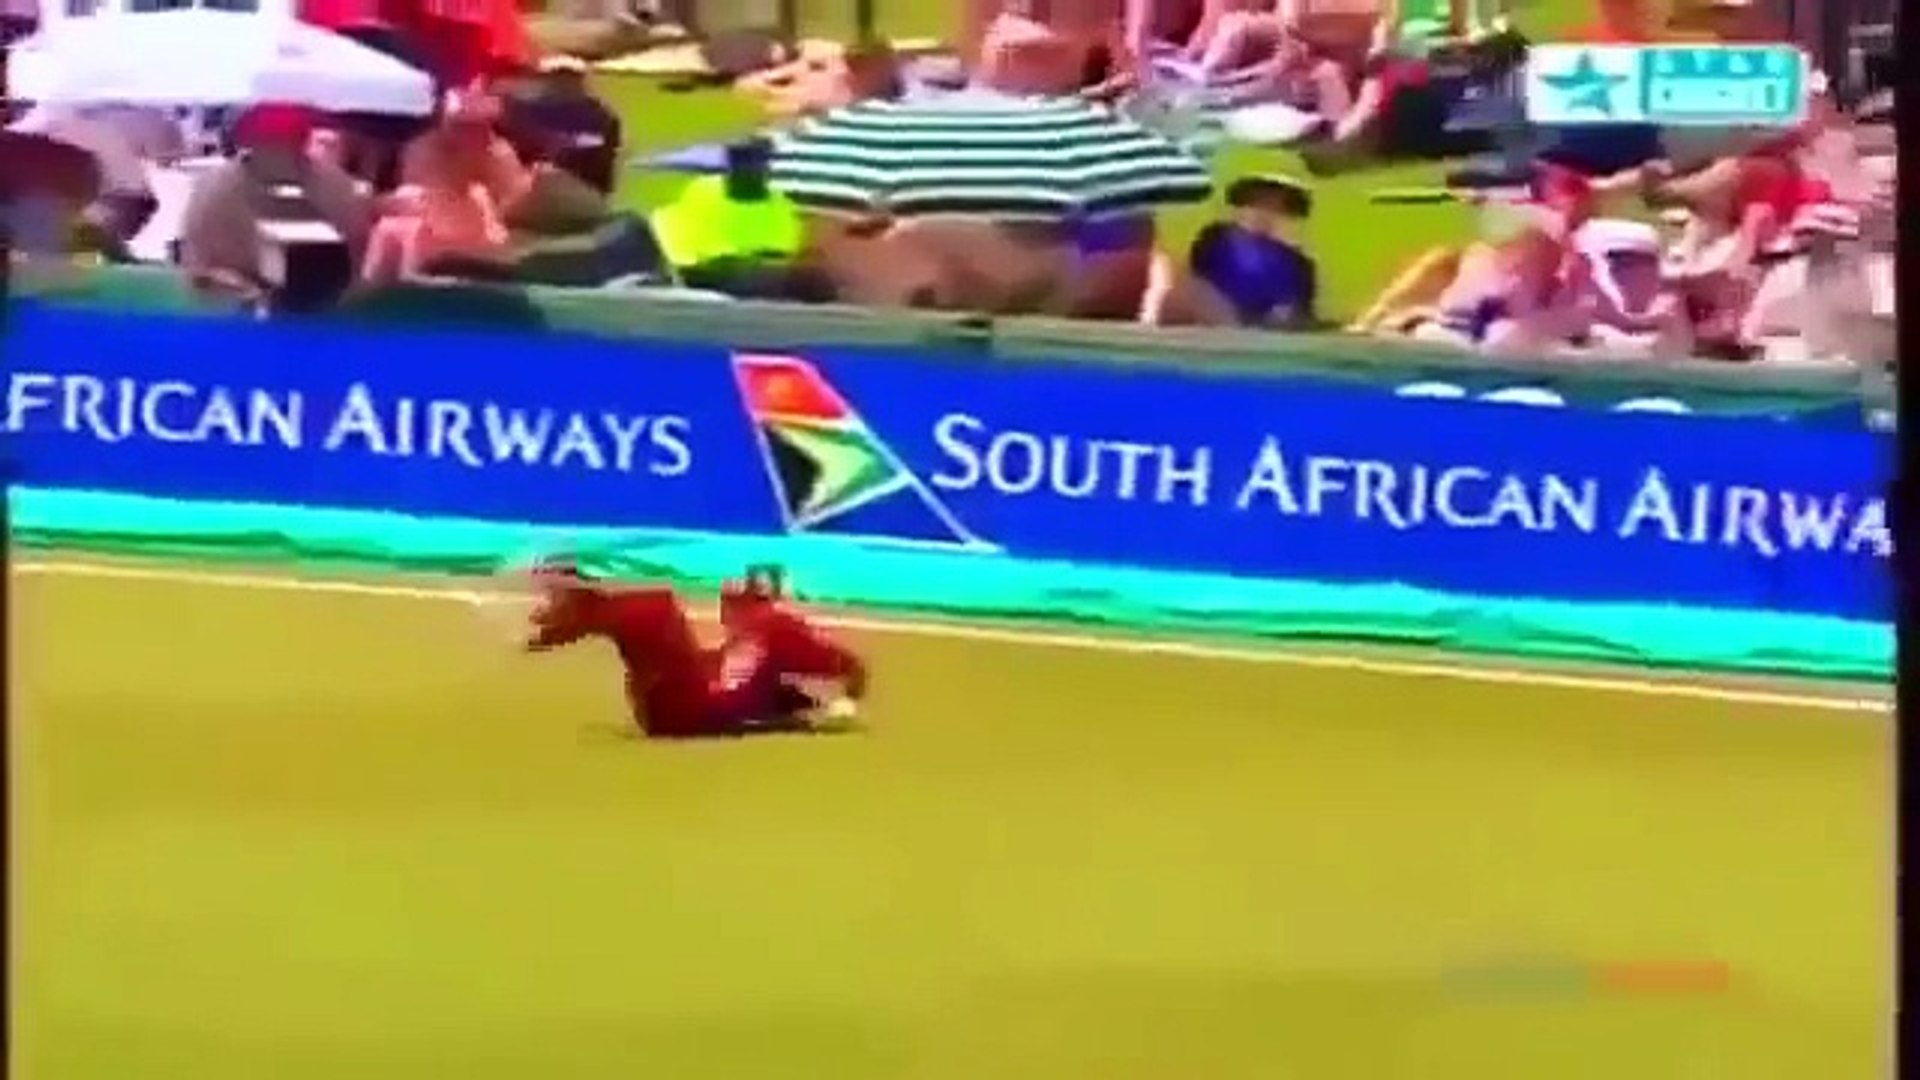 Best Catches in Cricket History - Top Cricket Catches - Cricket Highlights 2016 - You World